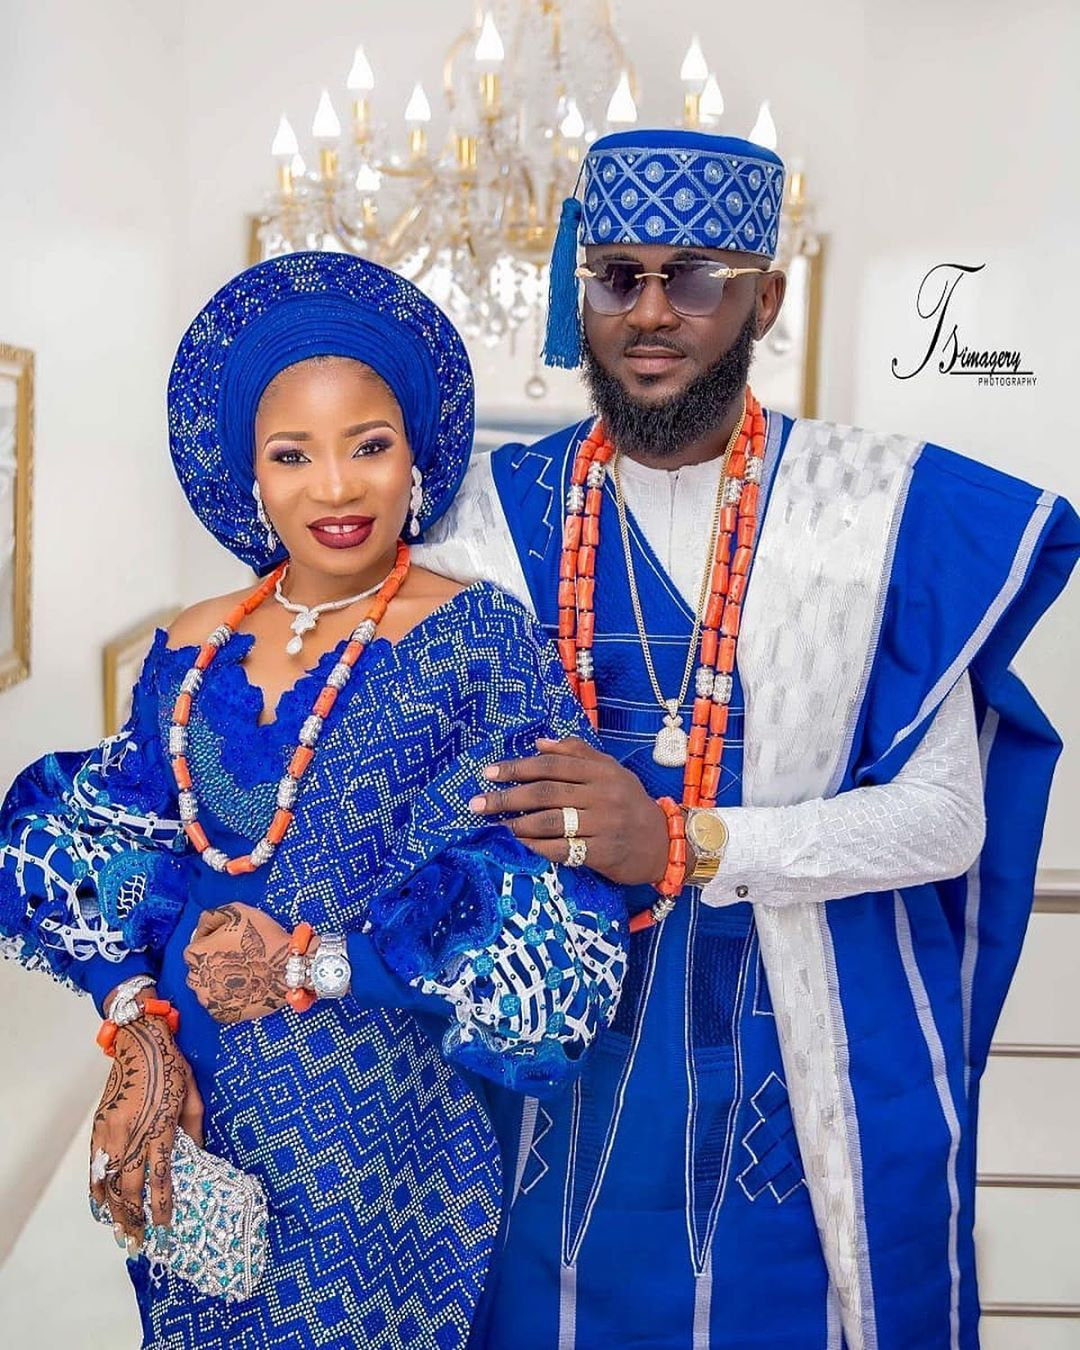 Thecarters 19 Fabric Bambe Fabrics Tailore African Traditional Wedding Dress African Traditional Wedding African Bridesmaid Dresses